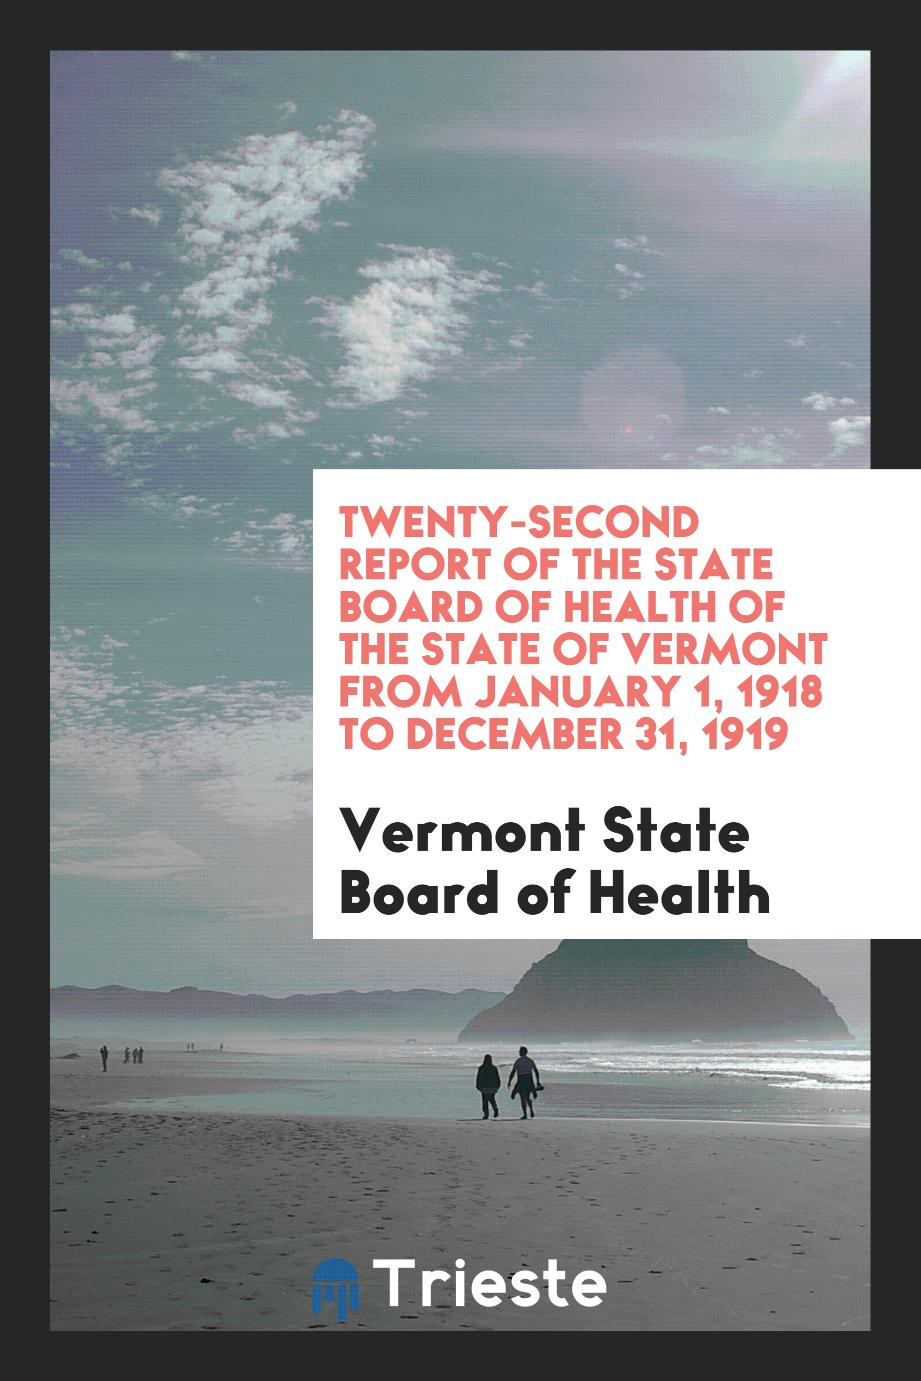 Twenty-Second Report of the State Board of Health of the State of Vermont from January 1, 1918 to December 31, 1919